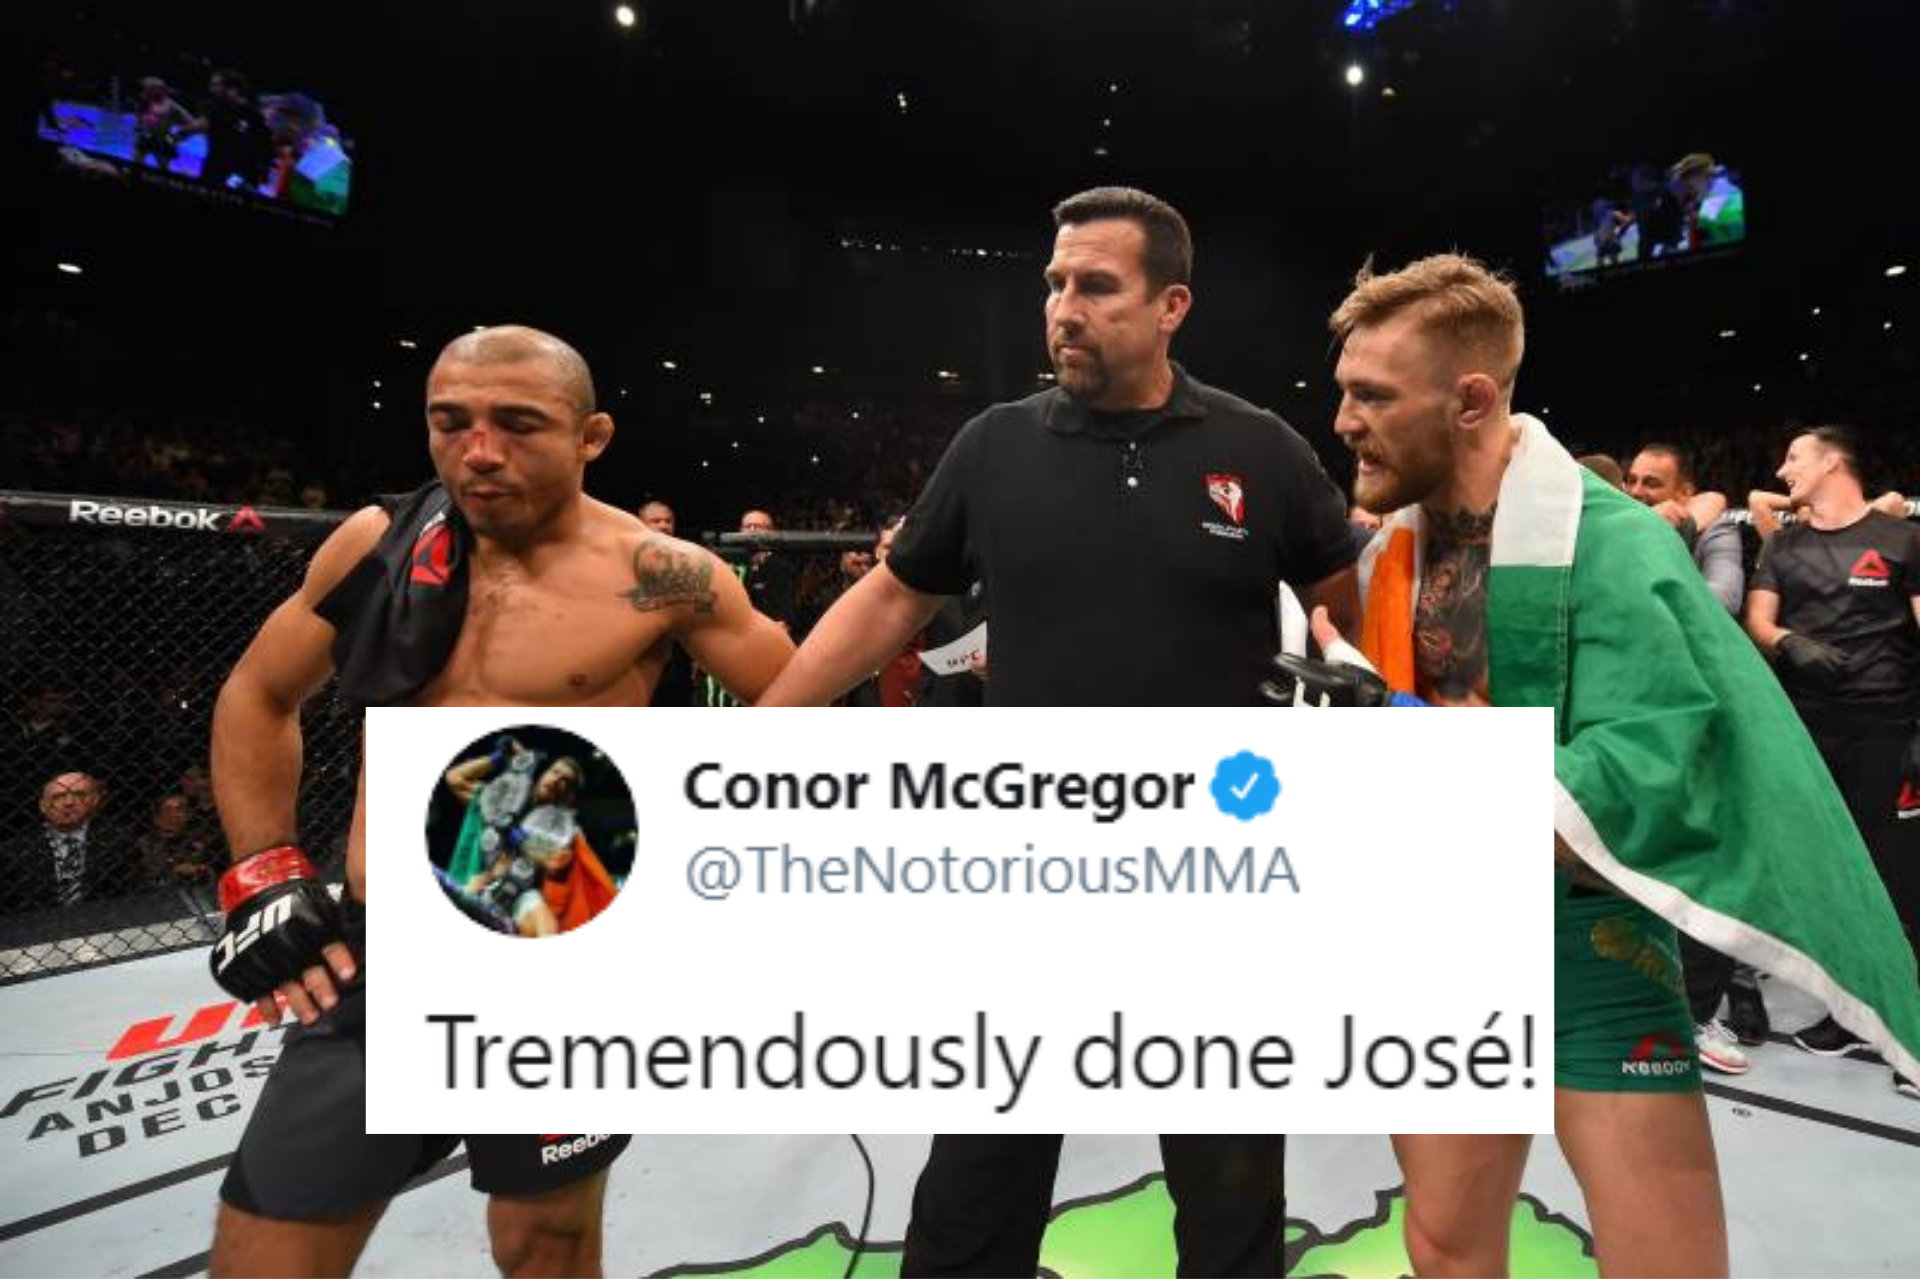 Conor McGregor reacts to Jose Aldo making weight for UFC 245 - Jose